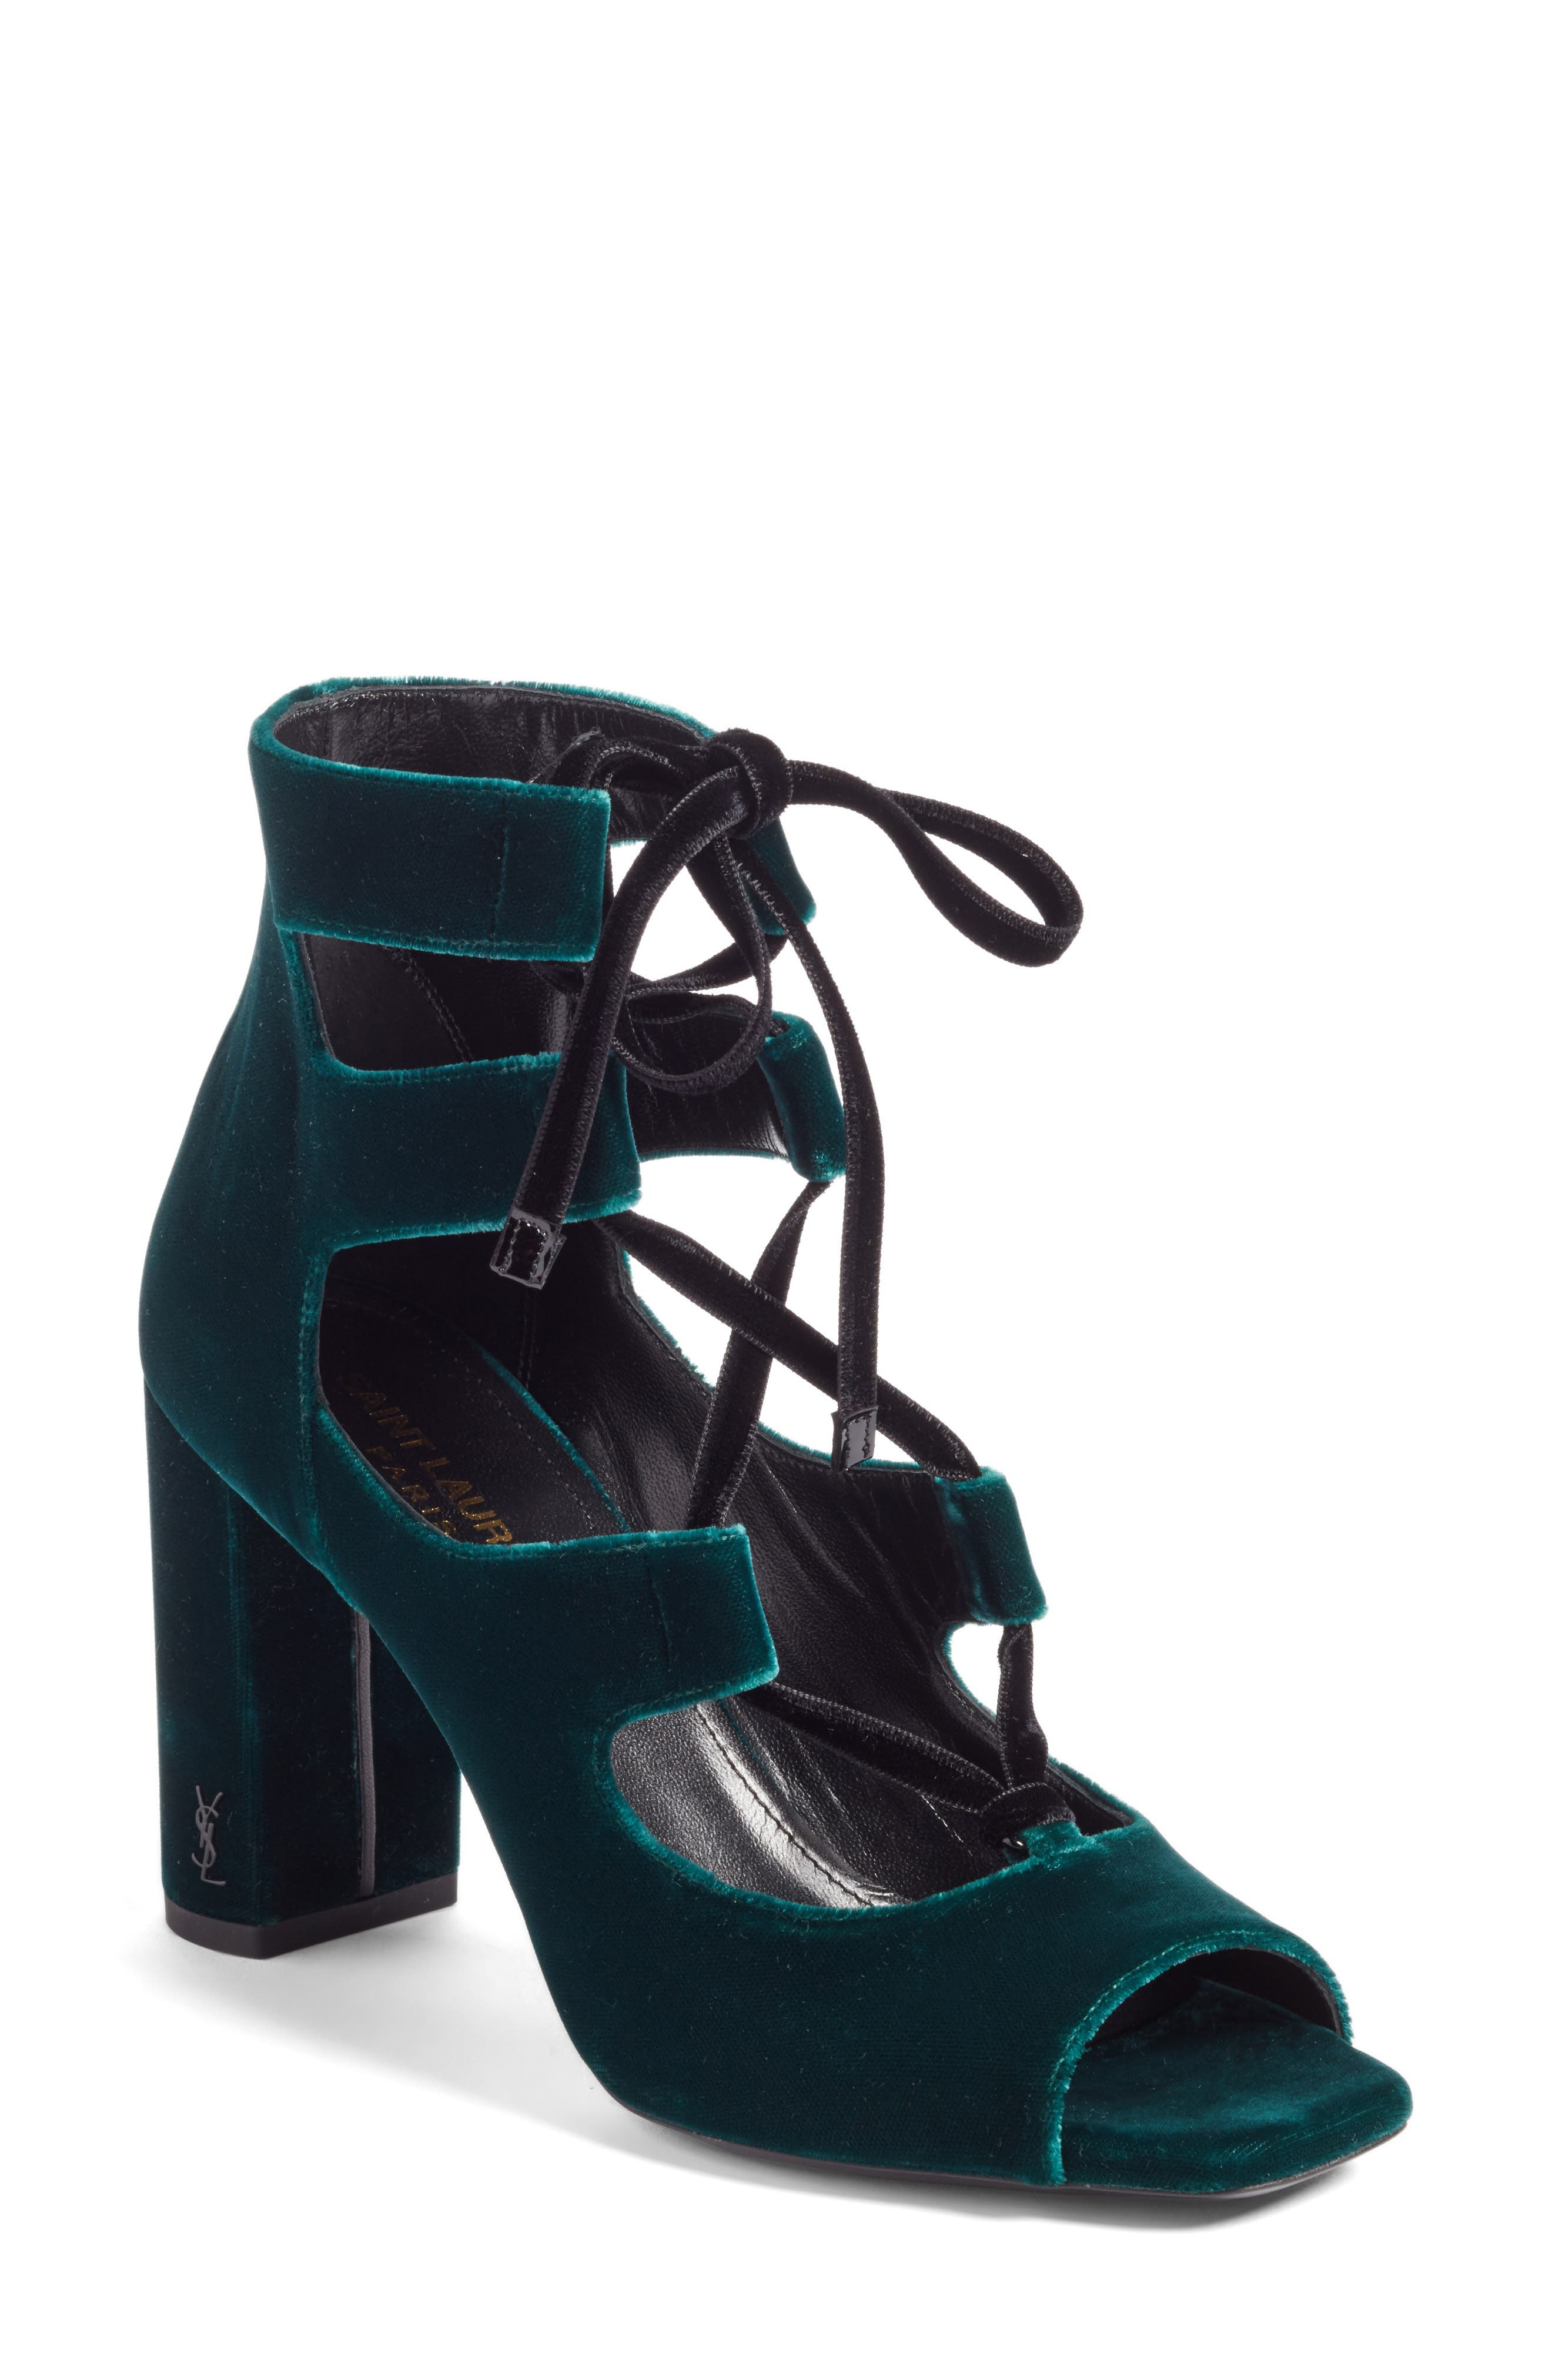 Loulou Ghillie Sandal,                             Main thumbnail 1, color,                             Teal